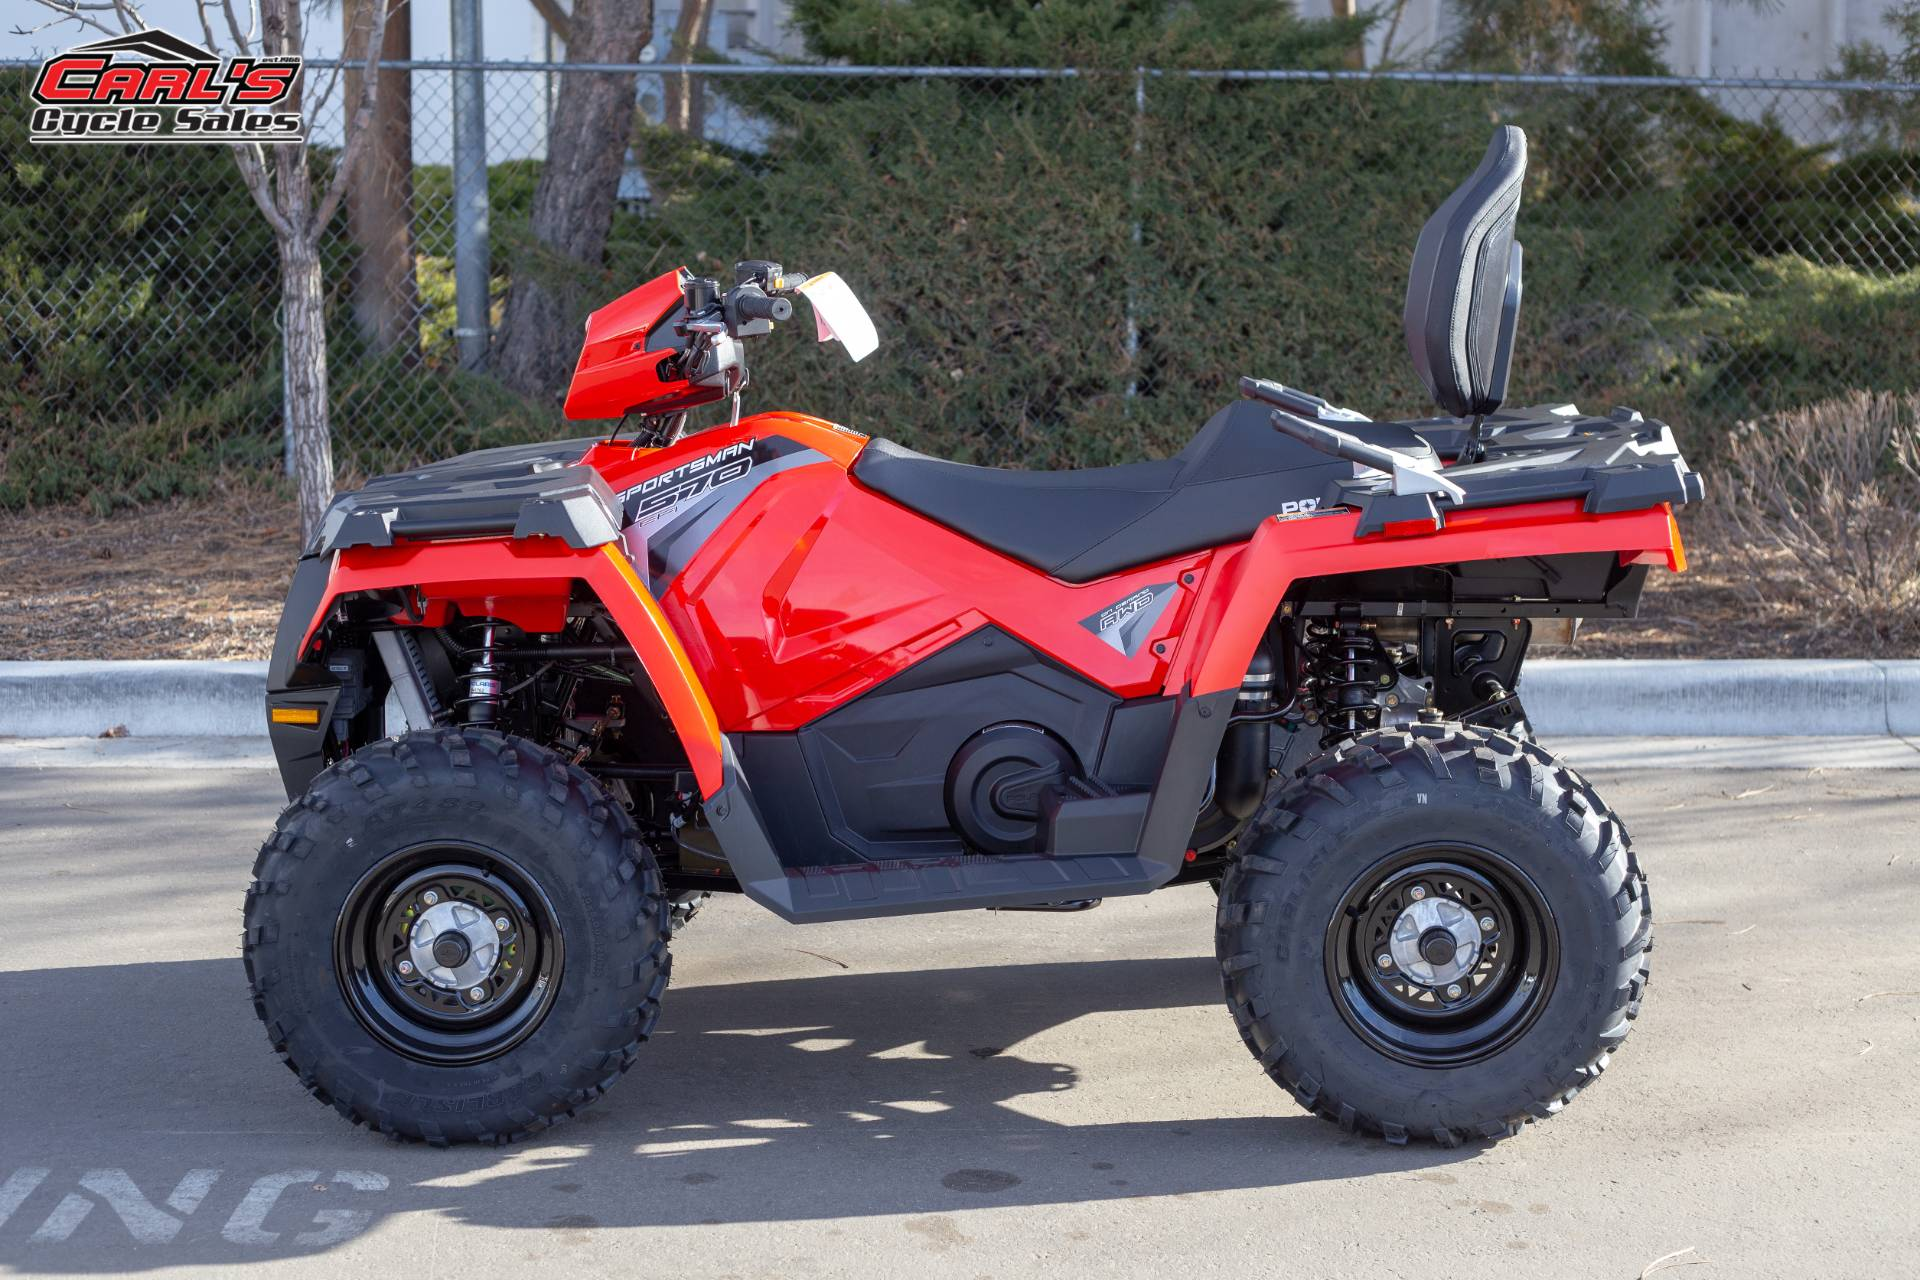 2019 Polaris Sportsman Touring 570 in Boise, Idaho - Photo 1